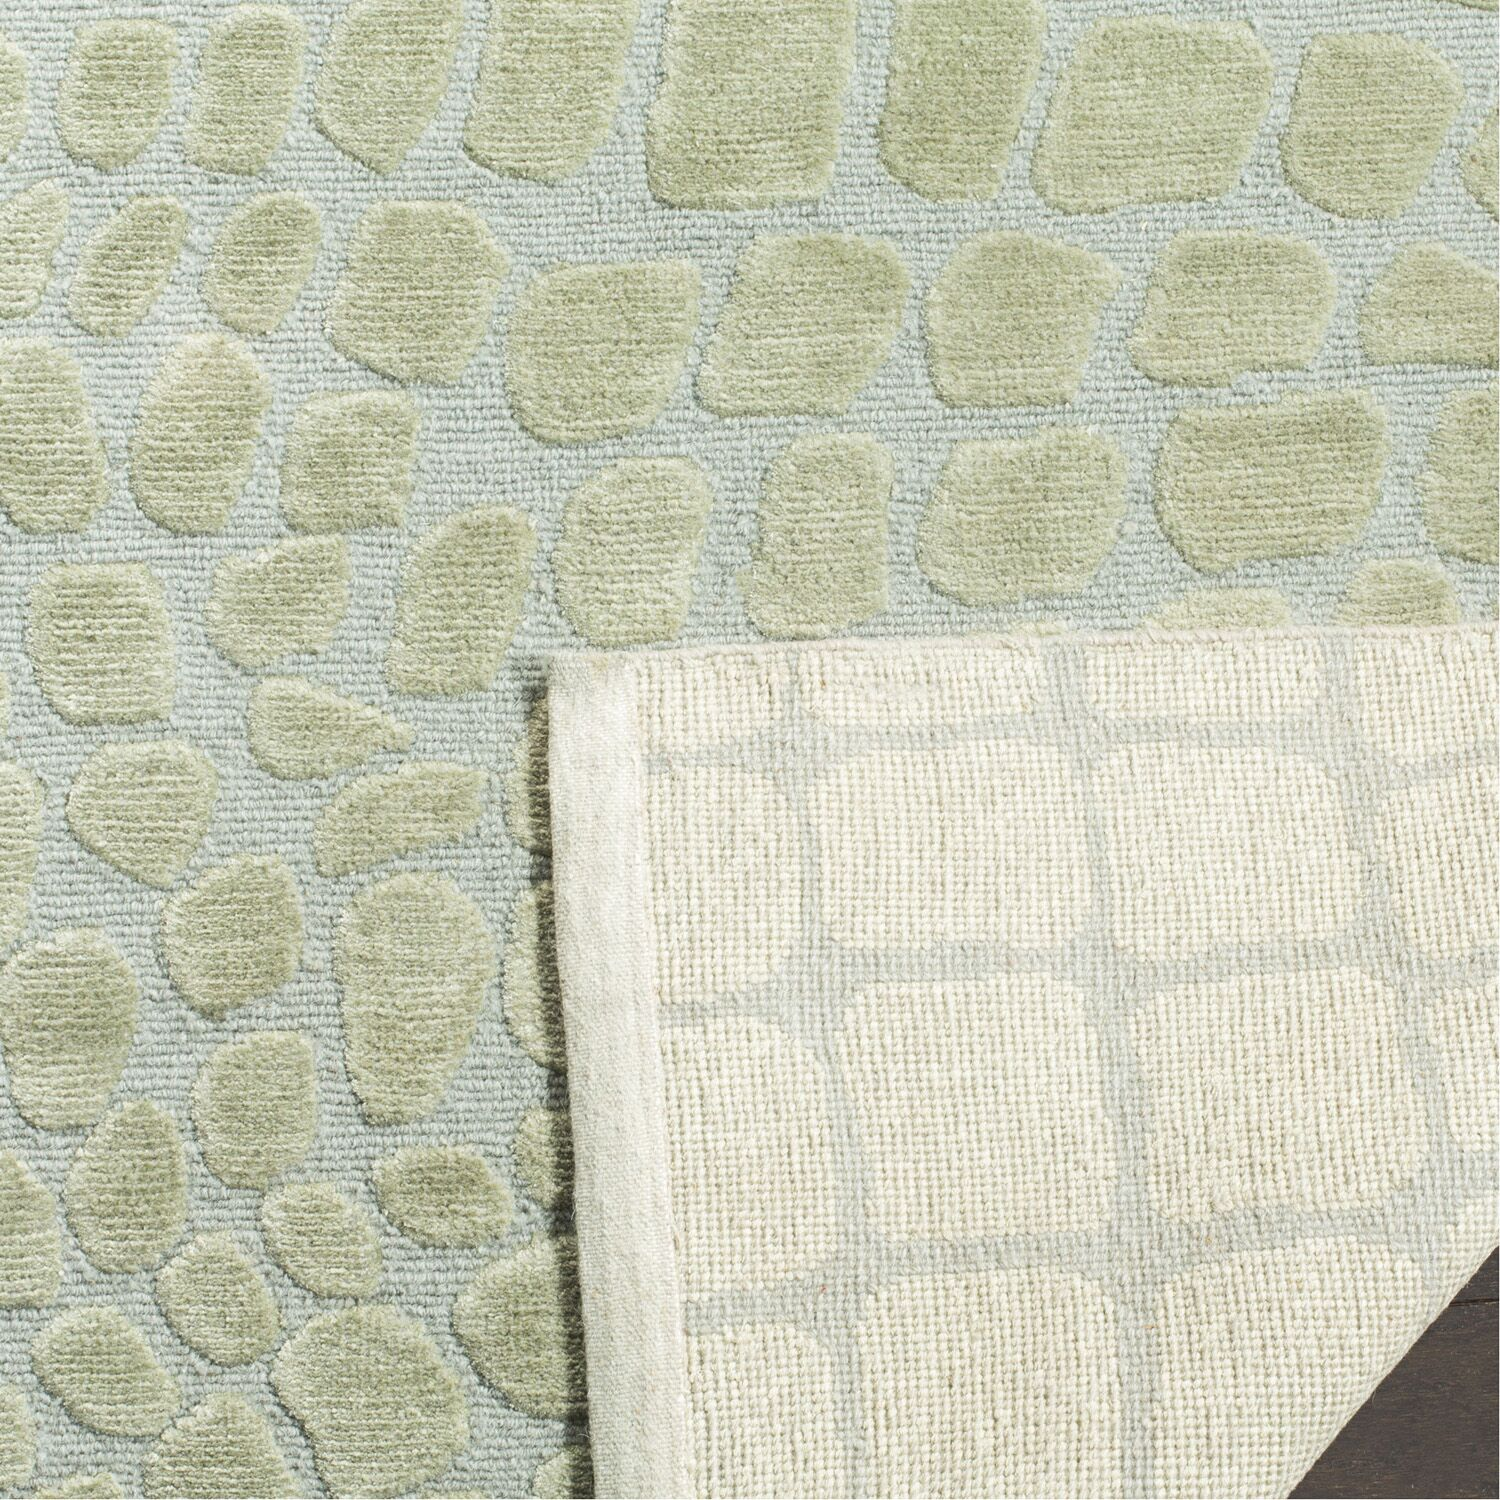 Amazonia Hand-Tufted Gray/Green Area Rug Rug Size: Rectangle 2'6